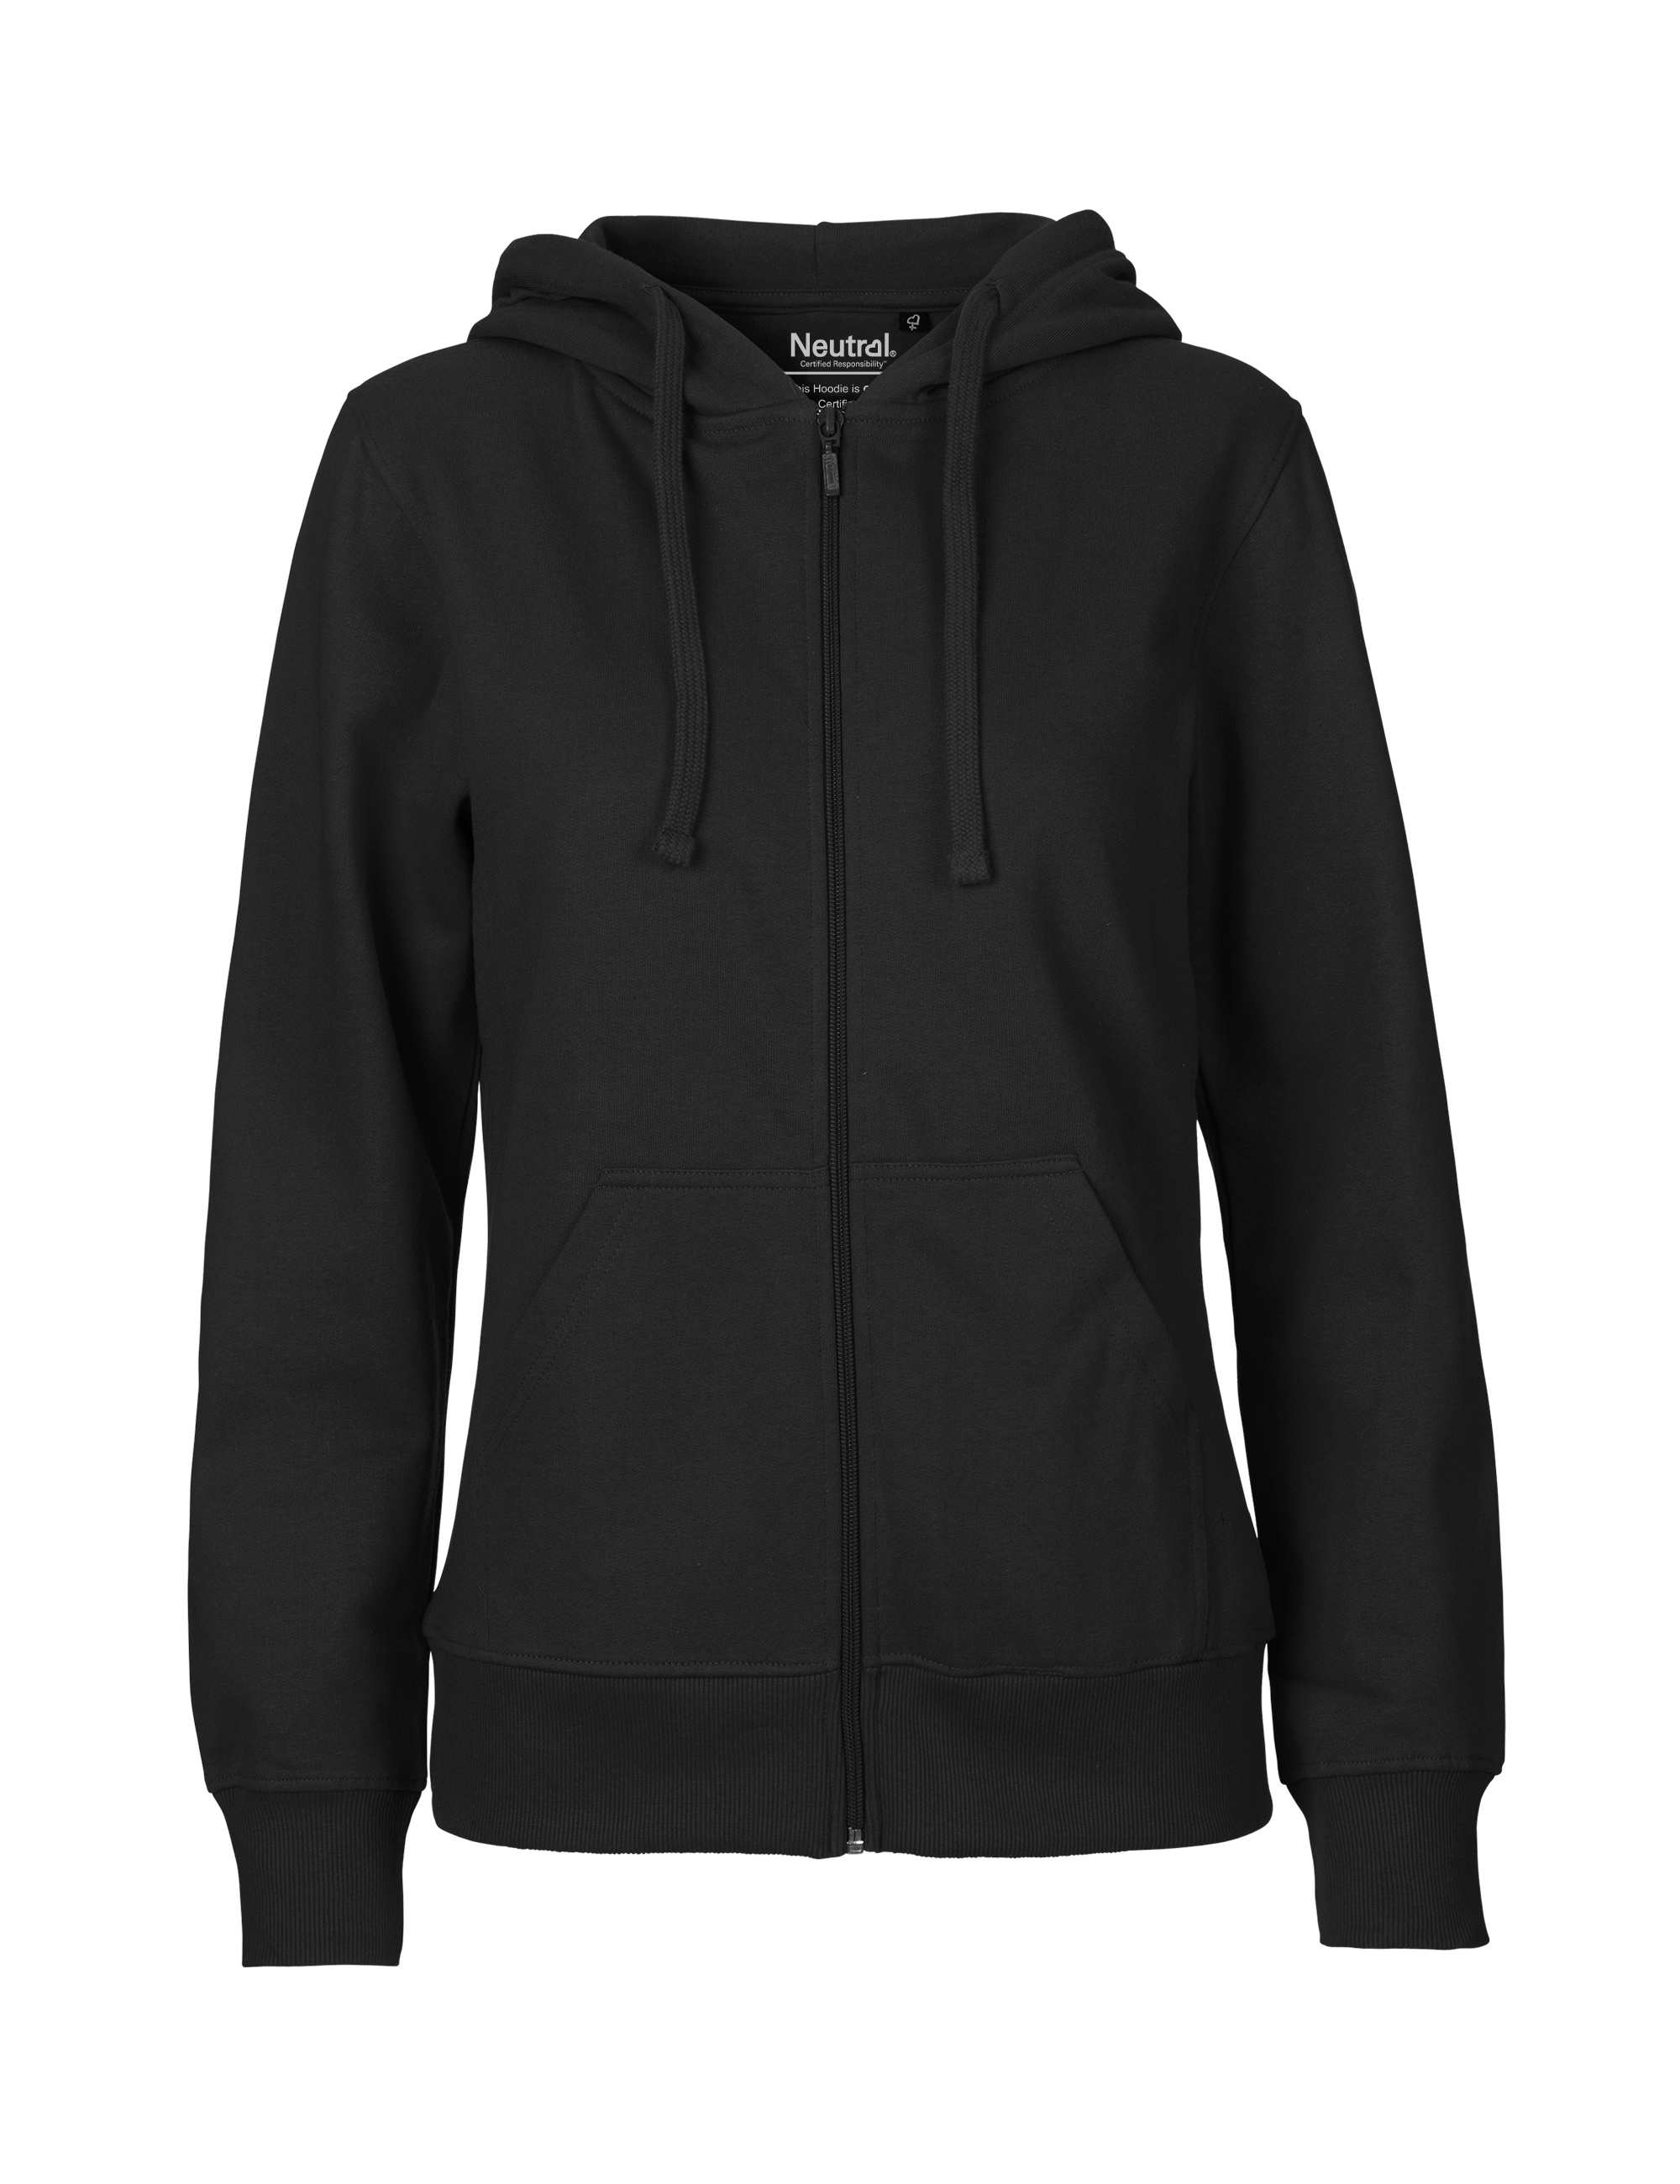 O83301 Ladies Hoodie w. Zip i Black